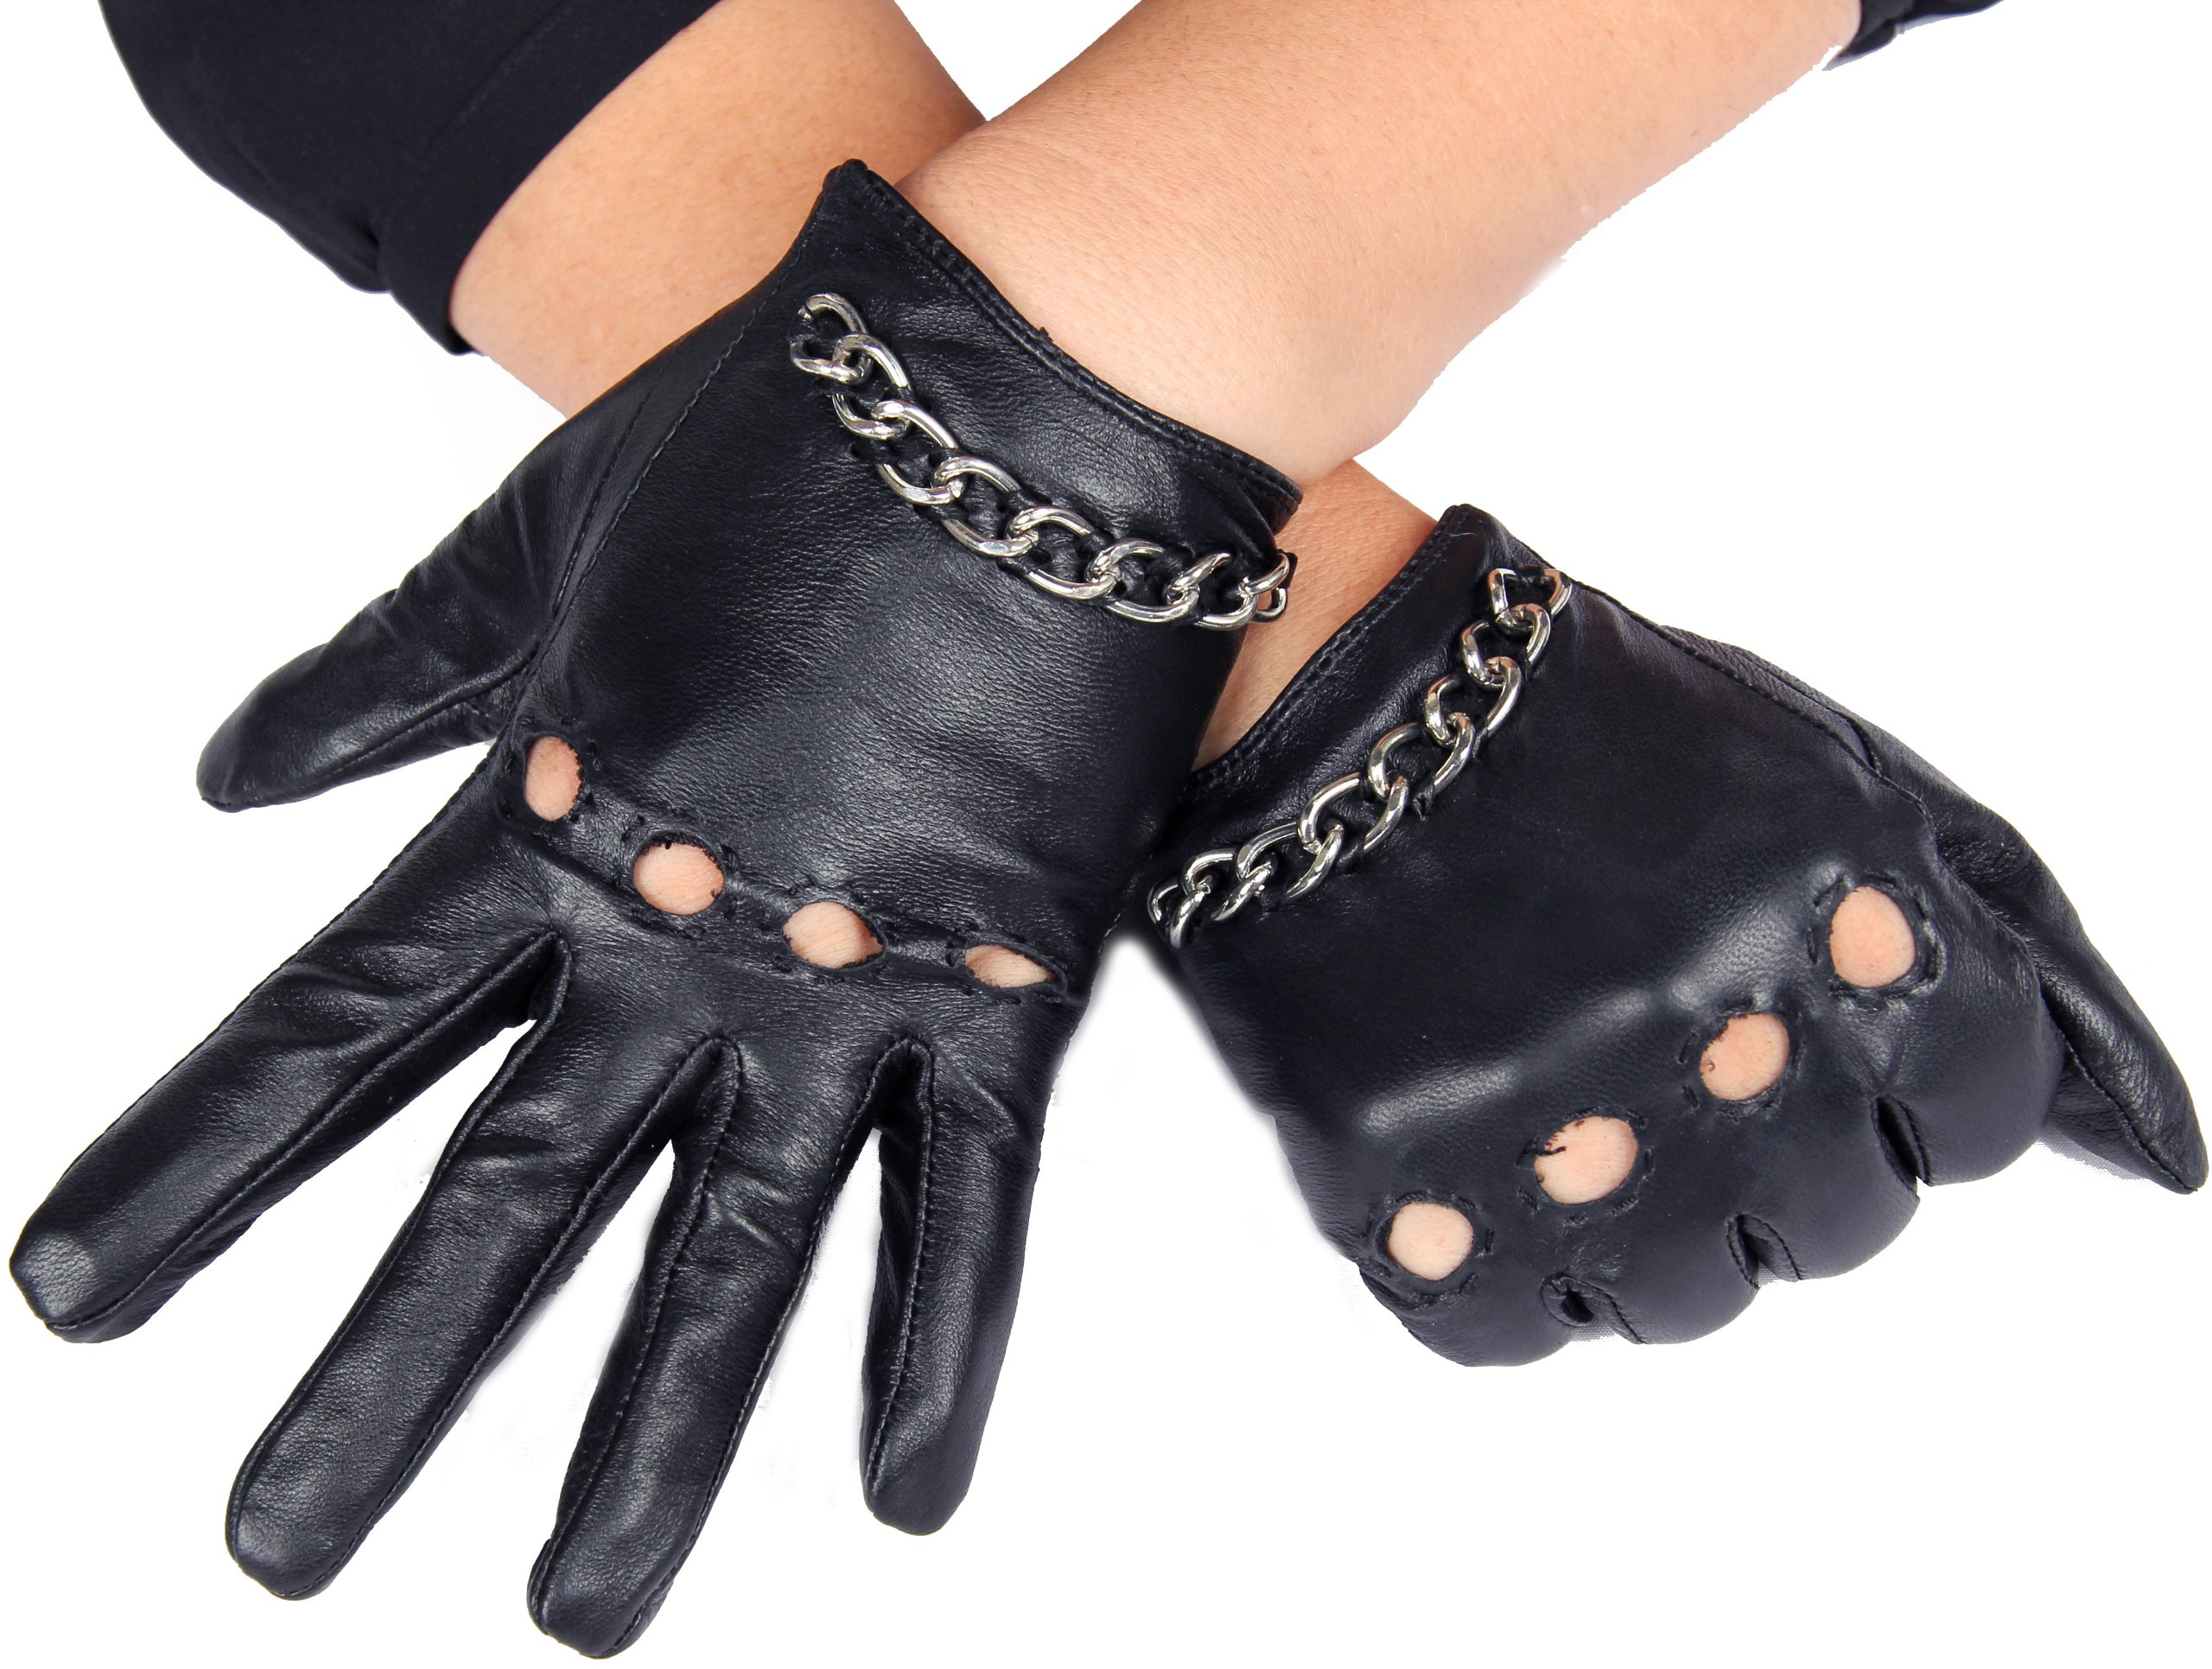 Calonice Amorino Women's Short Leather Driving Gloves silver metal chain M by Calonice Amorino (Image #1)